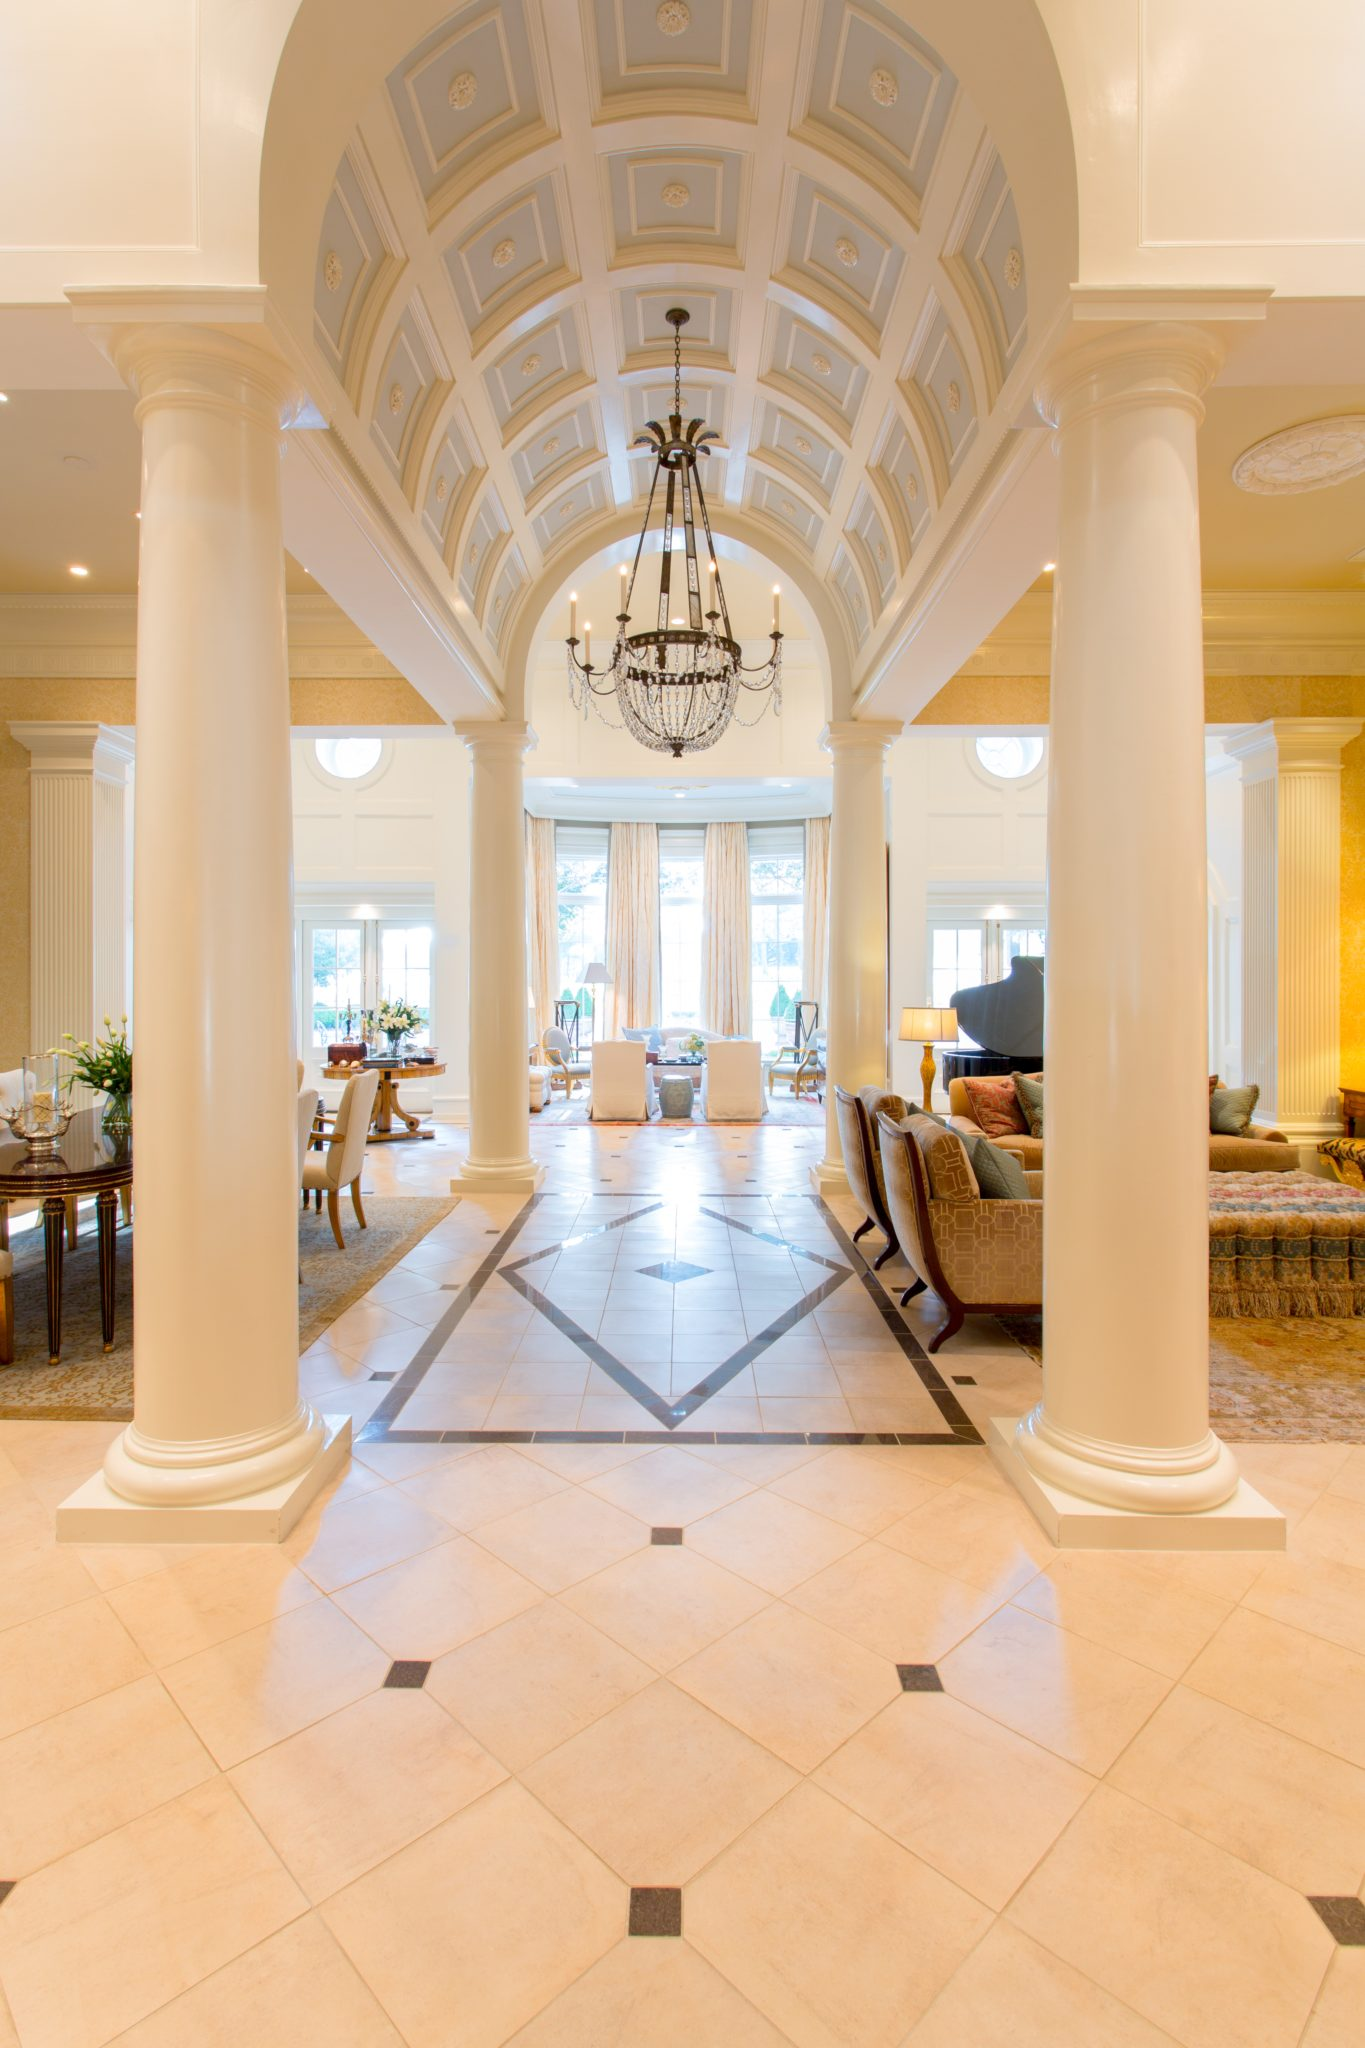 Mobile Country Club Renovation - Barrel Vaulted Ceiling by Walcott Adams Verneuille Architects